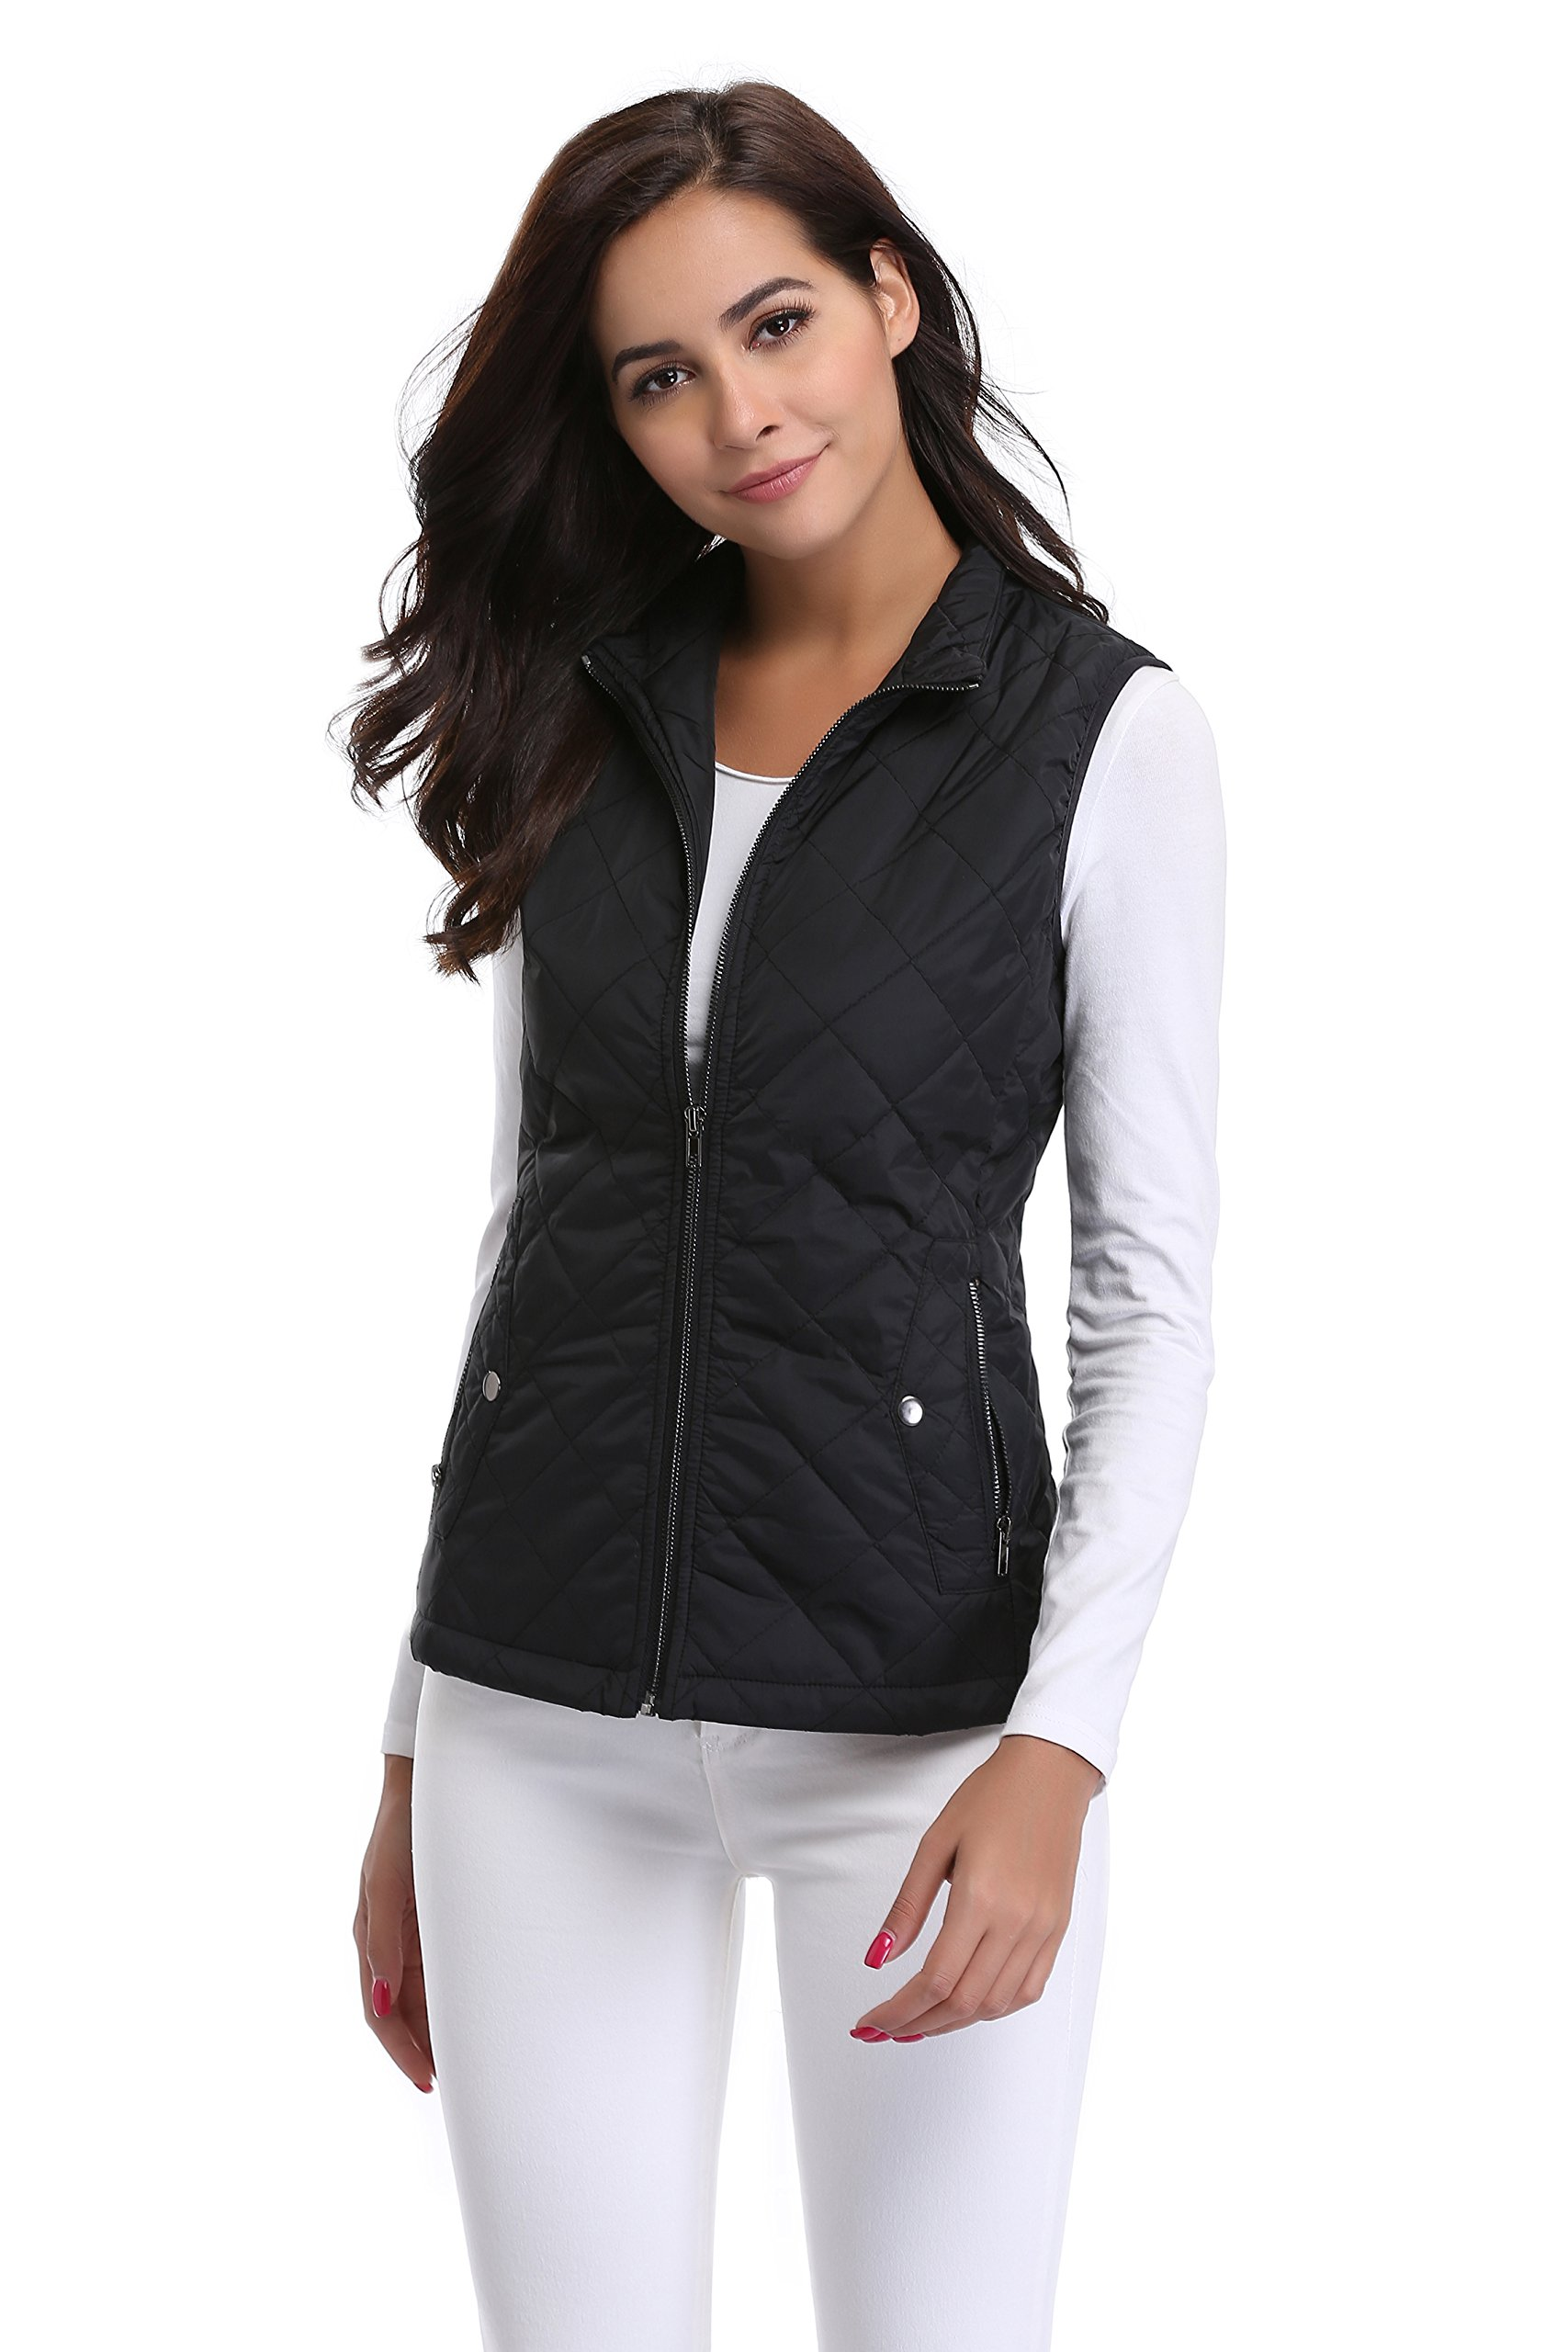 MISS MOLY Women Lightweight Quilted Padded Vest Stand Collar Zip Up Front Gilet Quilted,Black,Medium